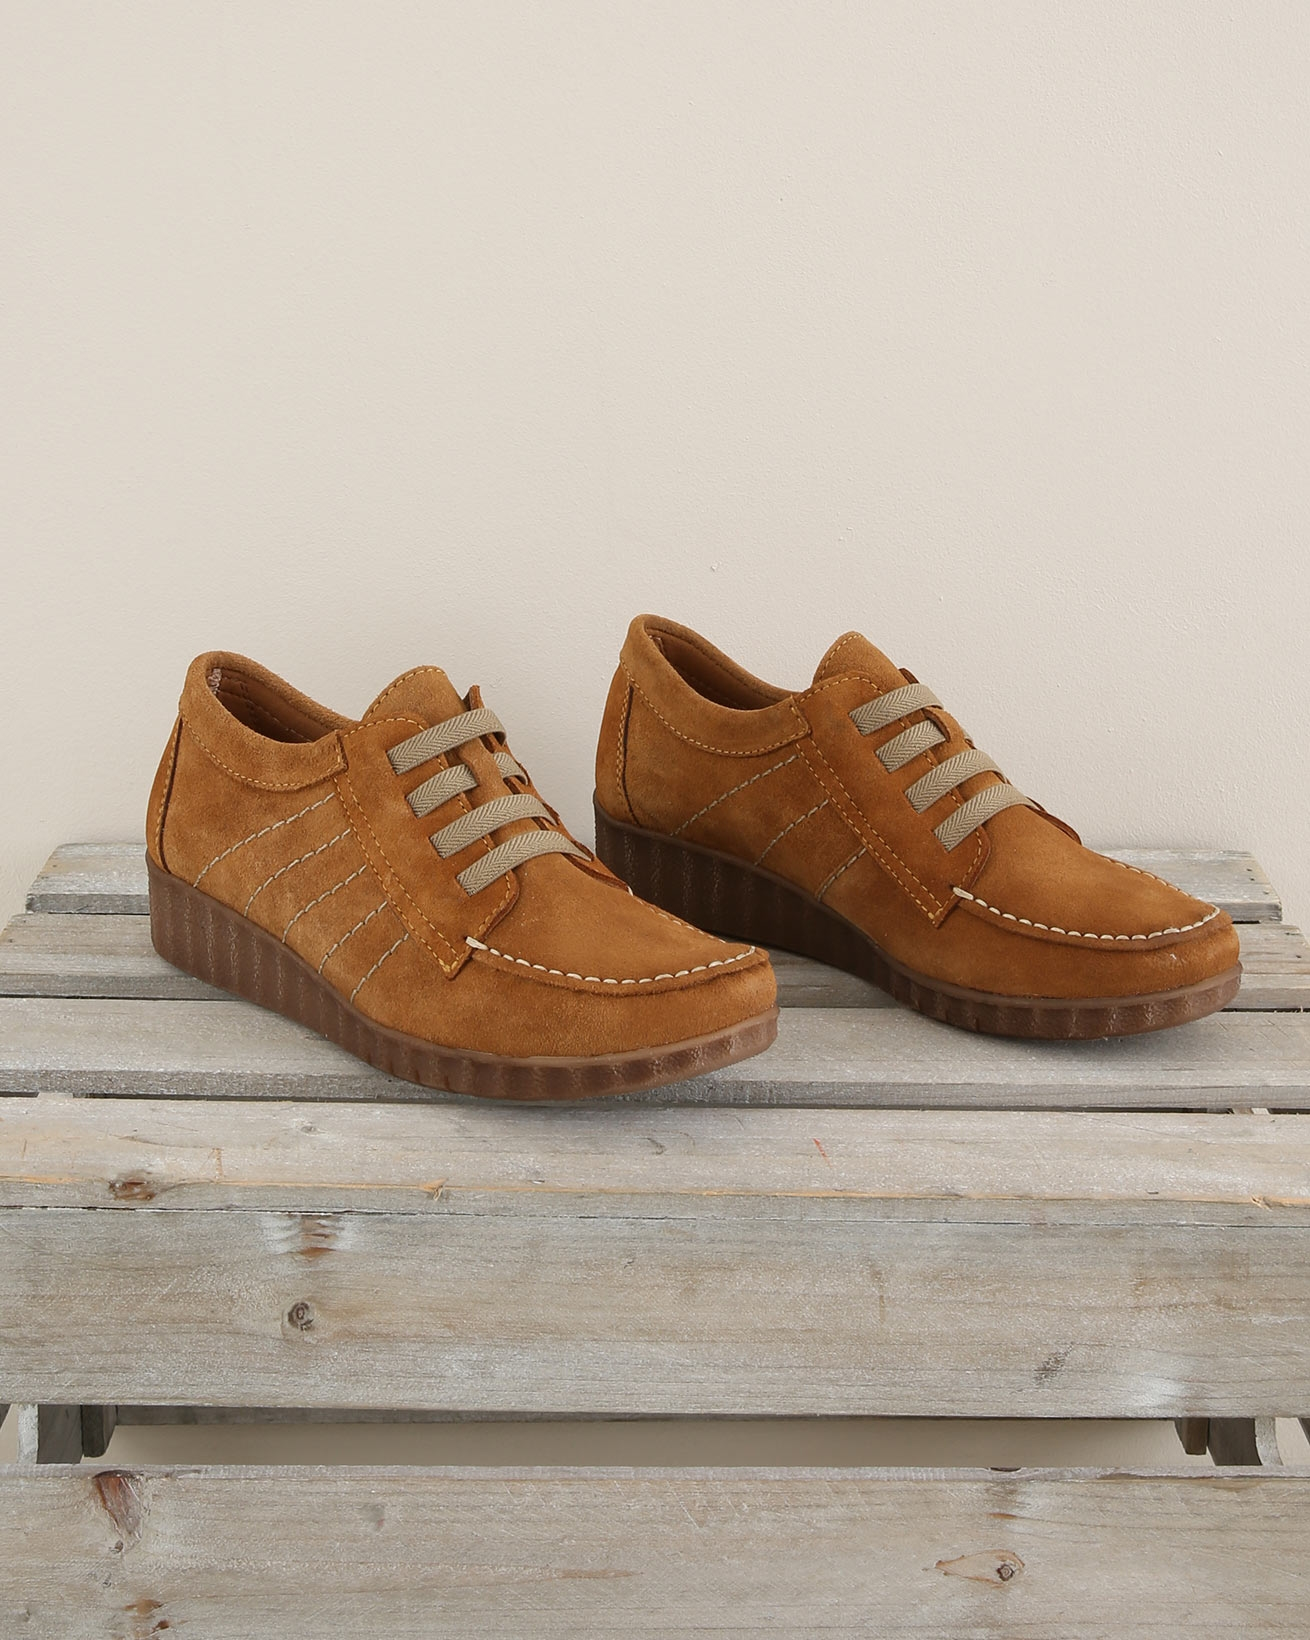 Suede Moccasion Wedge Shoe - Size 37 - Mustard - 1683